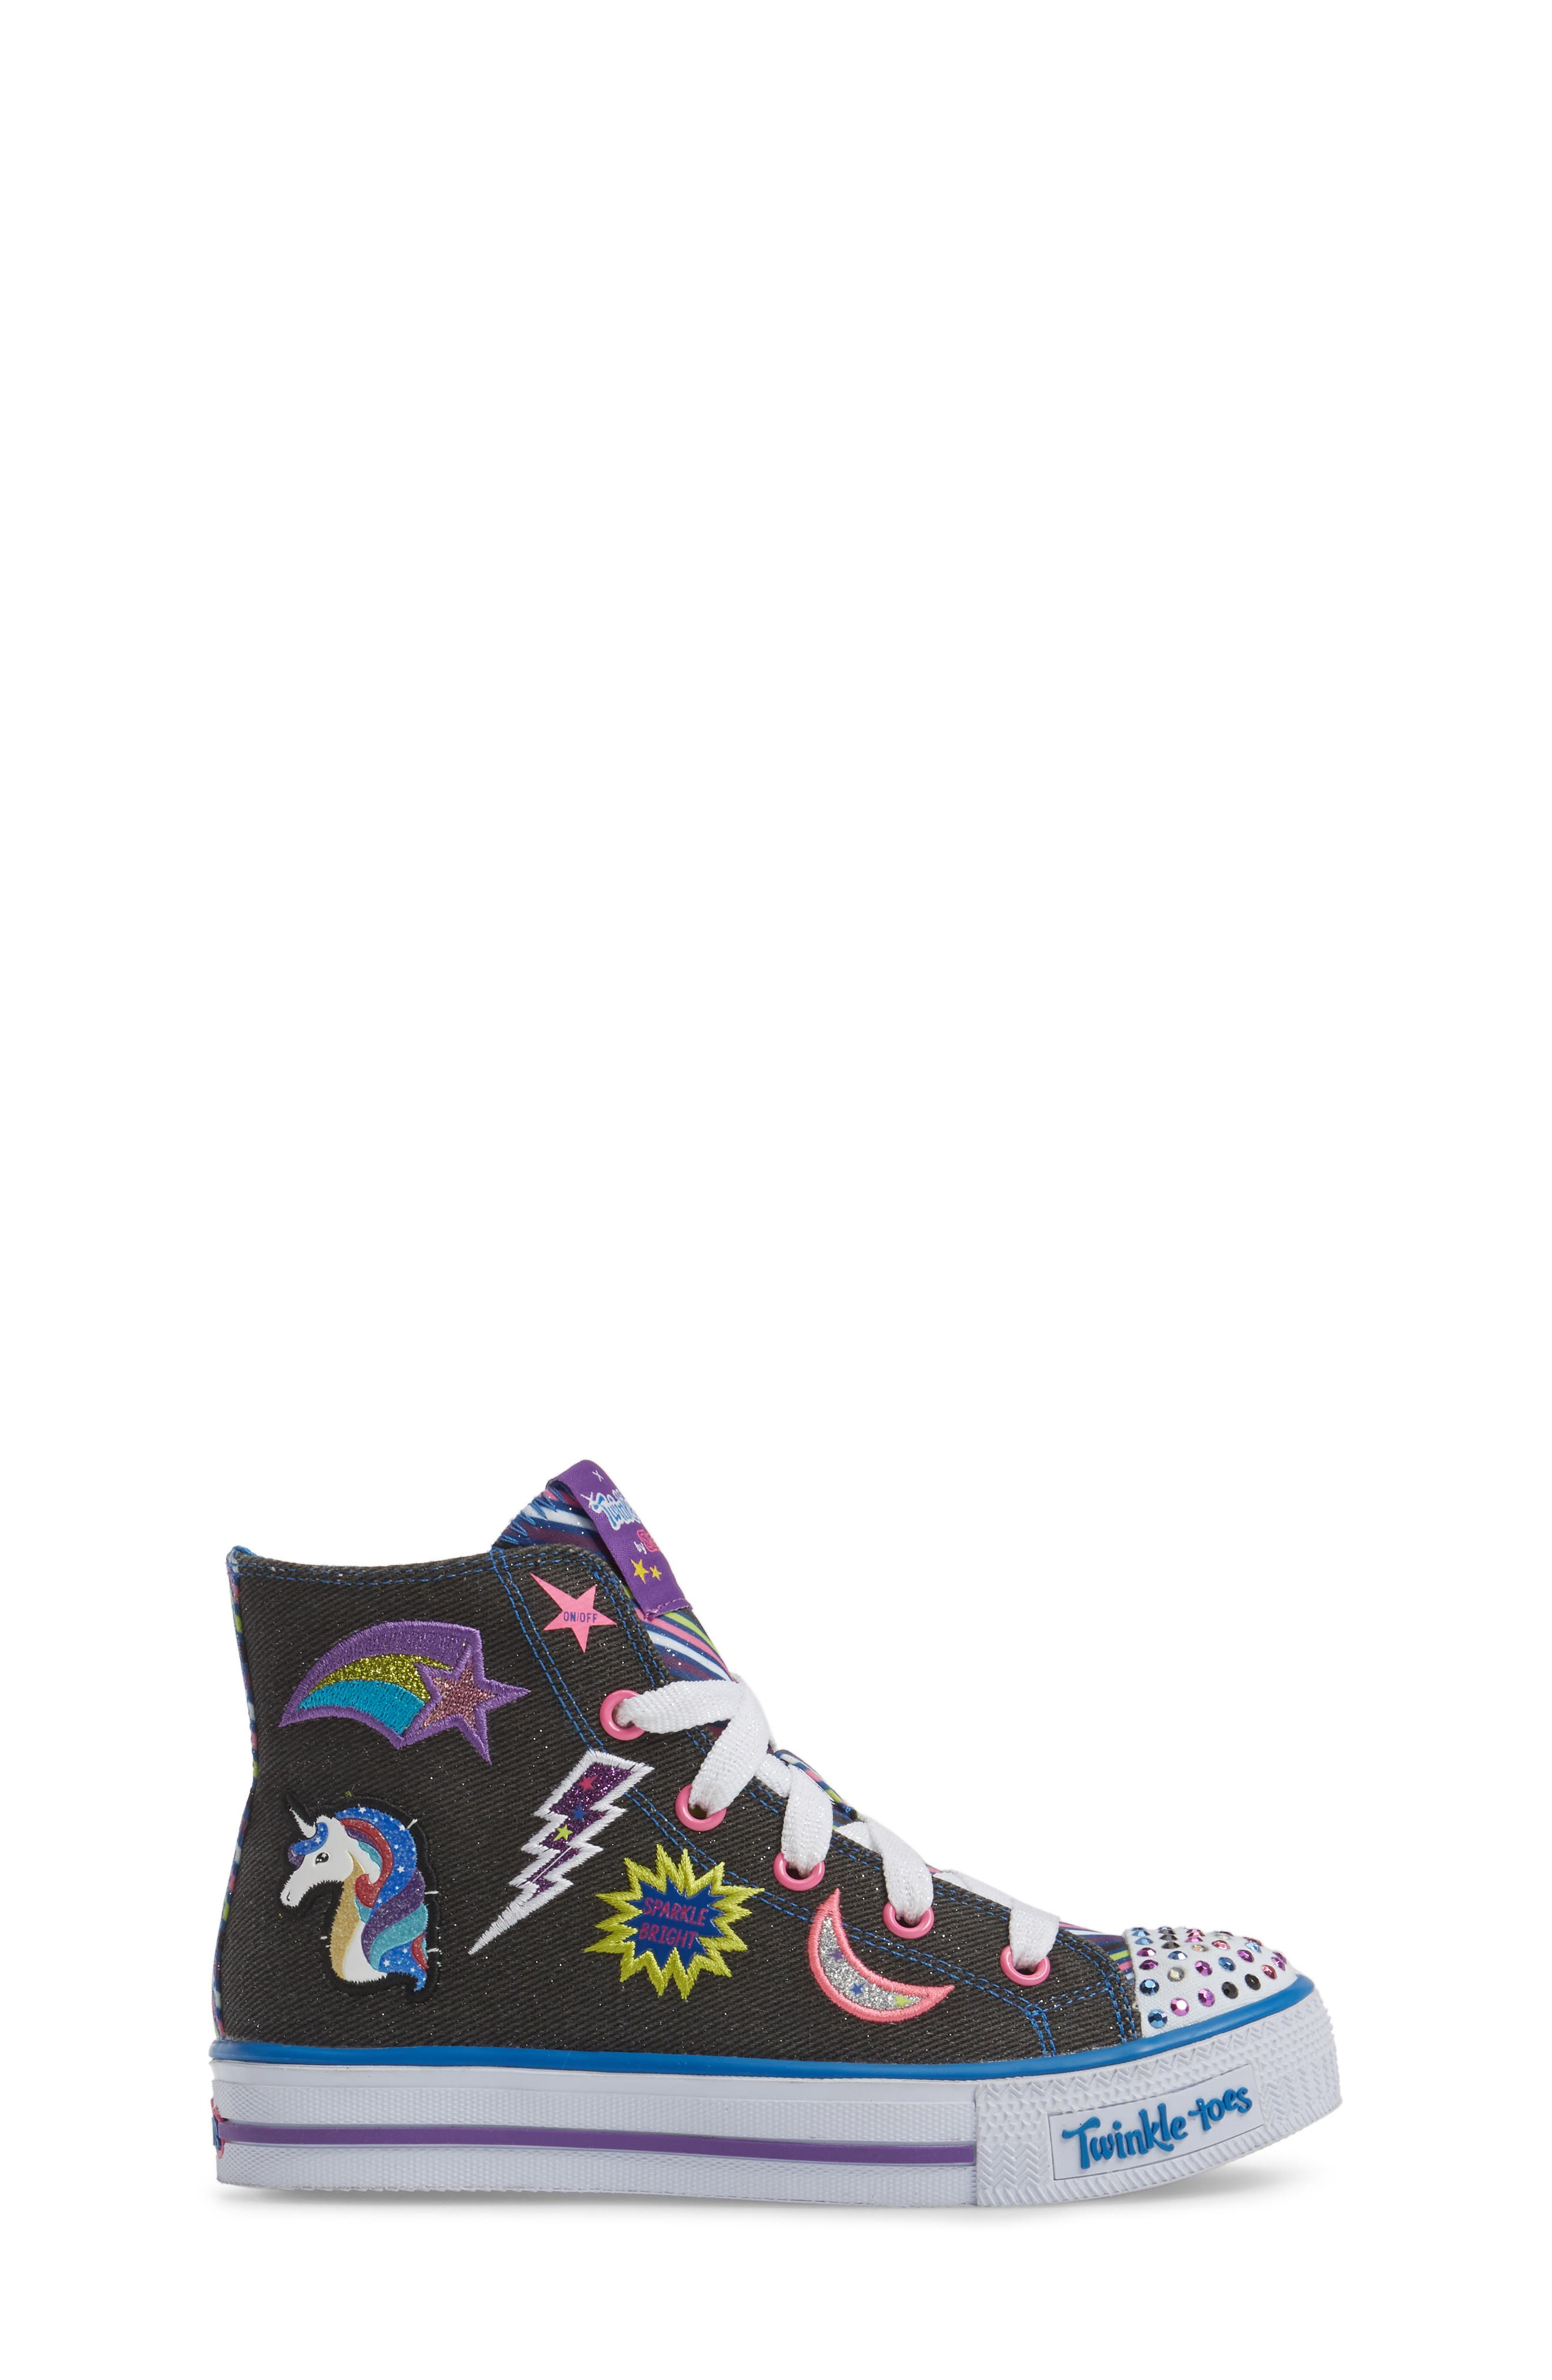 Twinkle Toes Shuffles Light-Up High Top Sneaker,                             Alternate thumbnail 3, color,